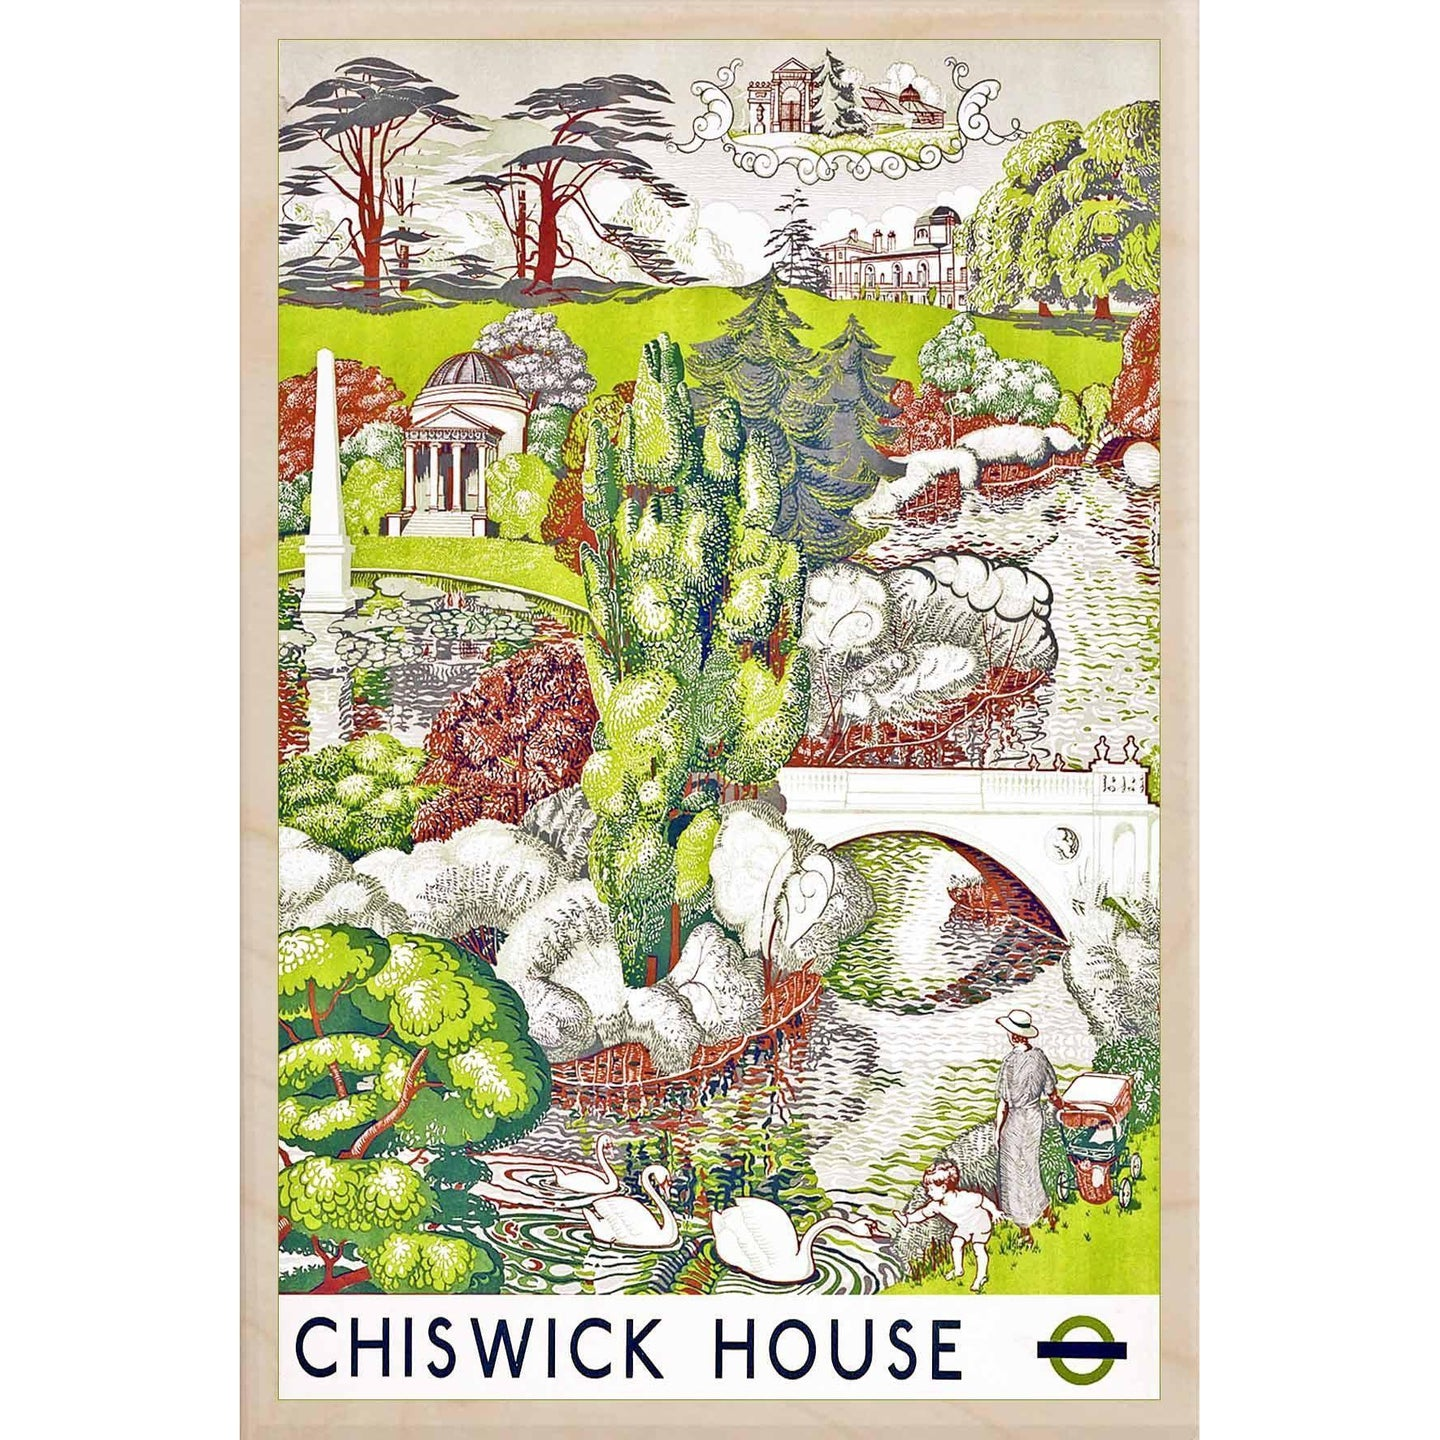 CHISWICK HOUSE-[wooden_postcard]-[london_transport_museum]-[original_illustration]THE WOODEN POSTCARD COMPANY